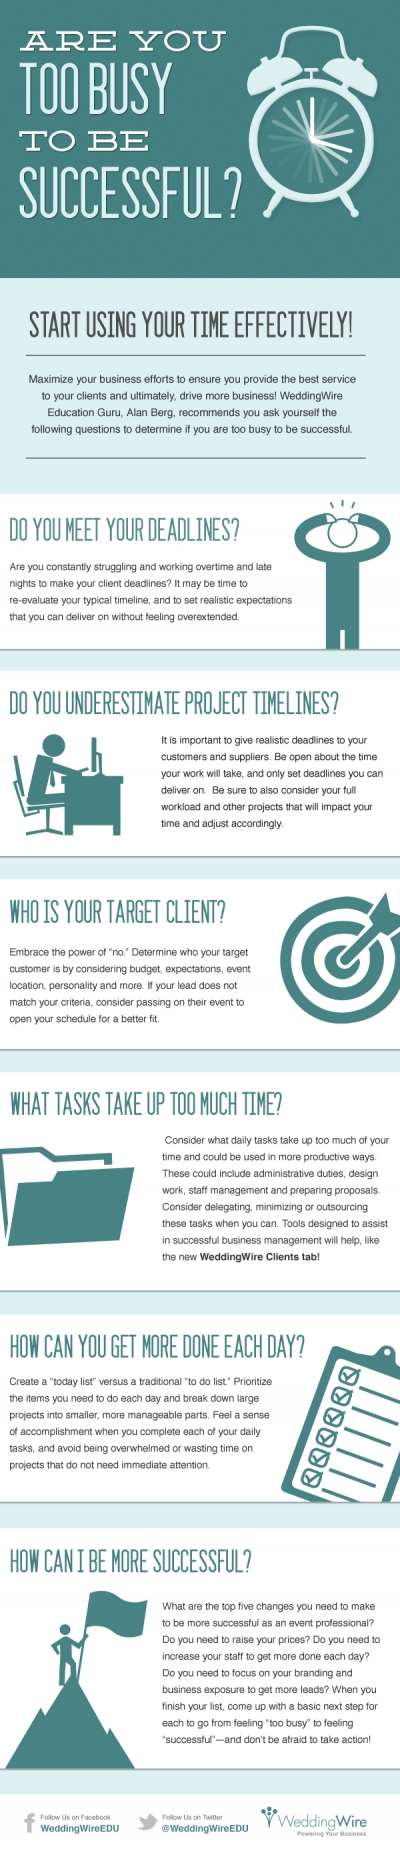 Are You Too Busy To Be Successful [infographic]